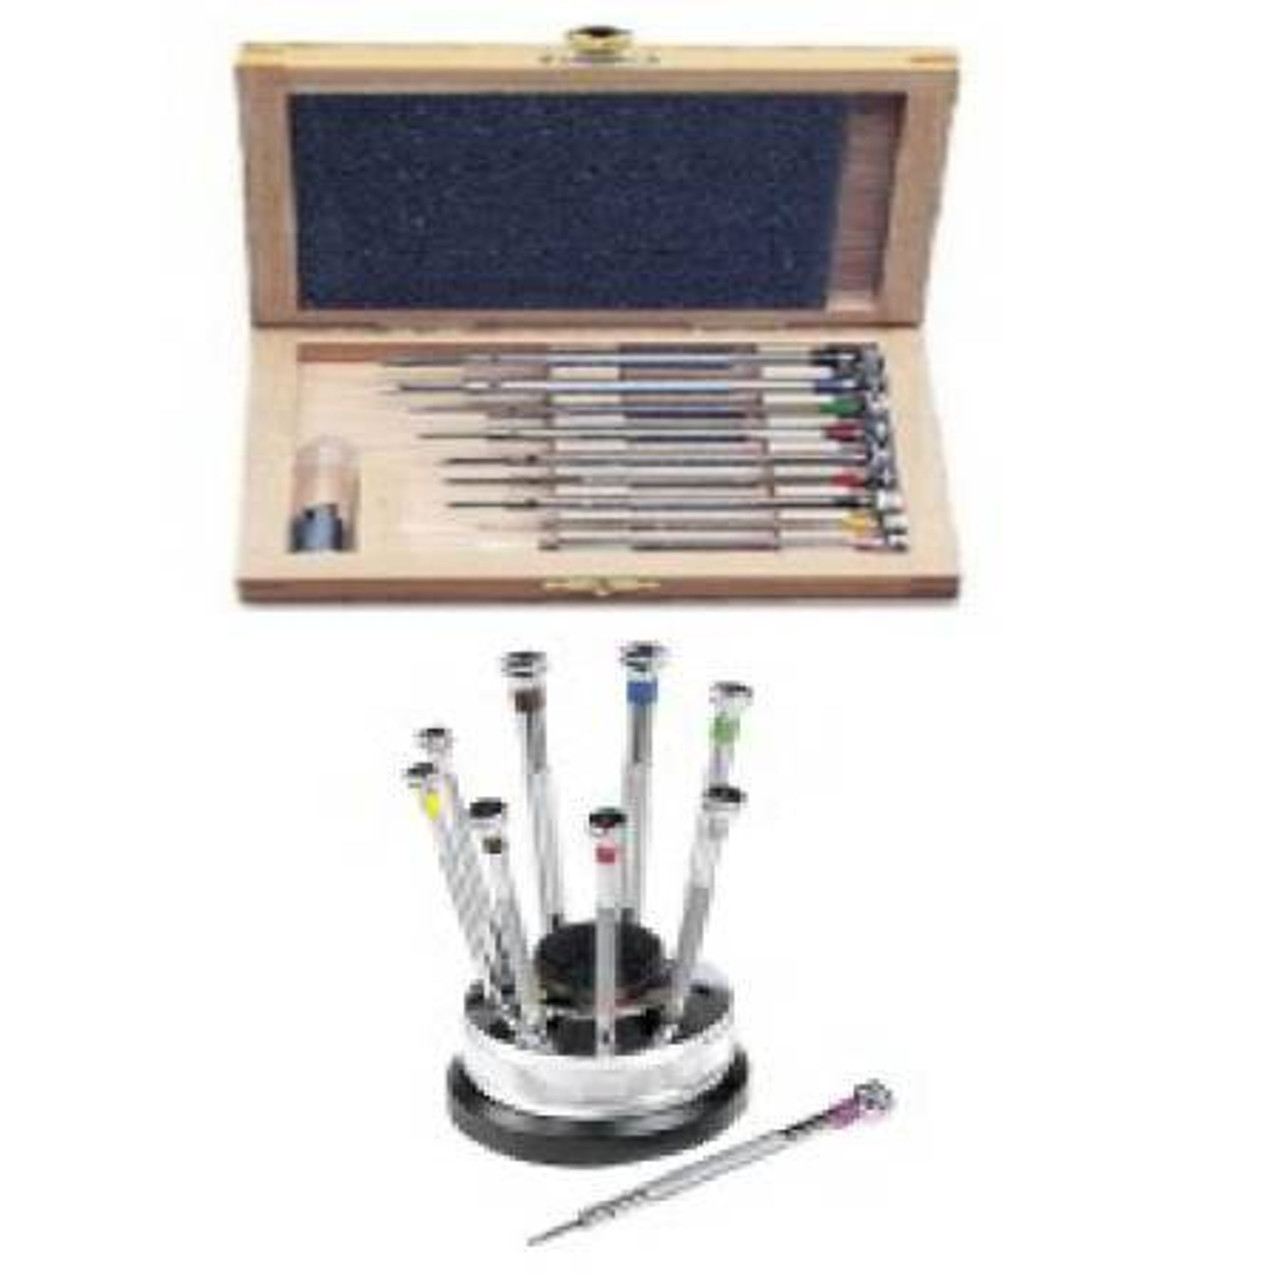 Screw Driver sets and Blades